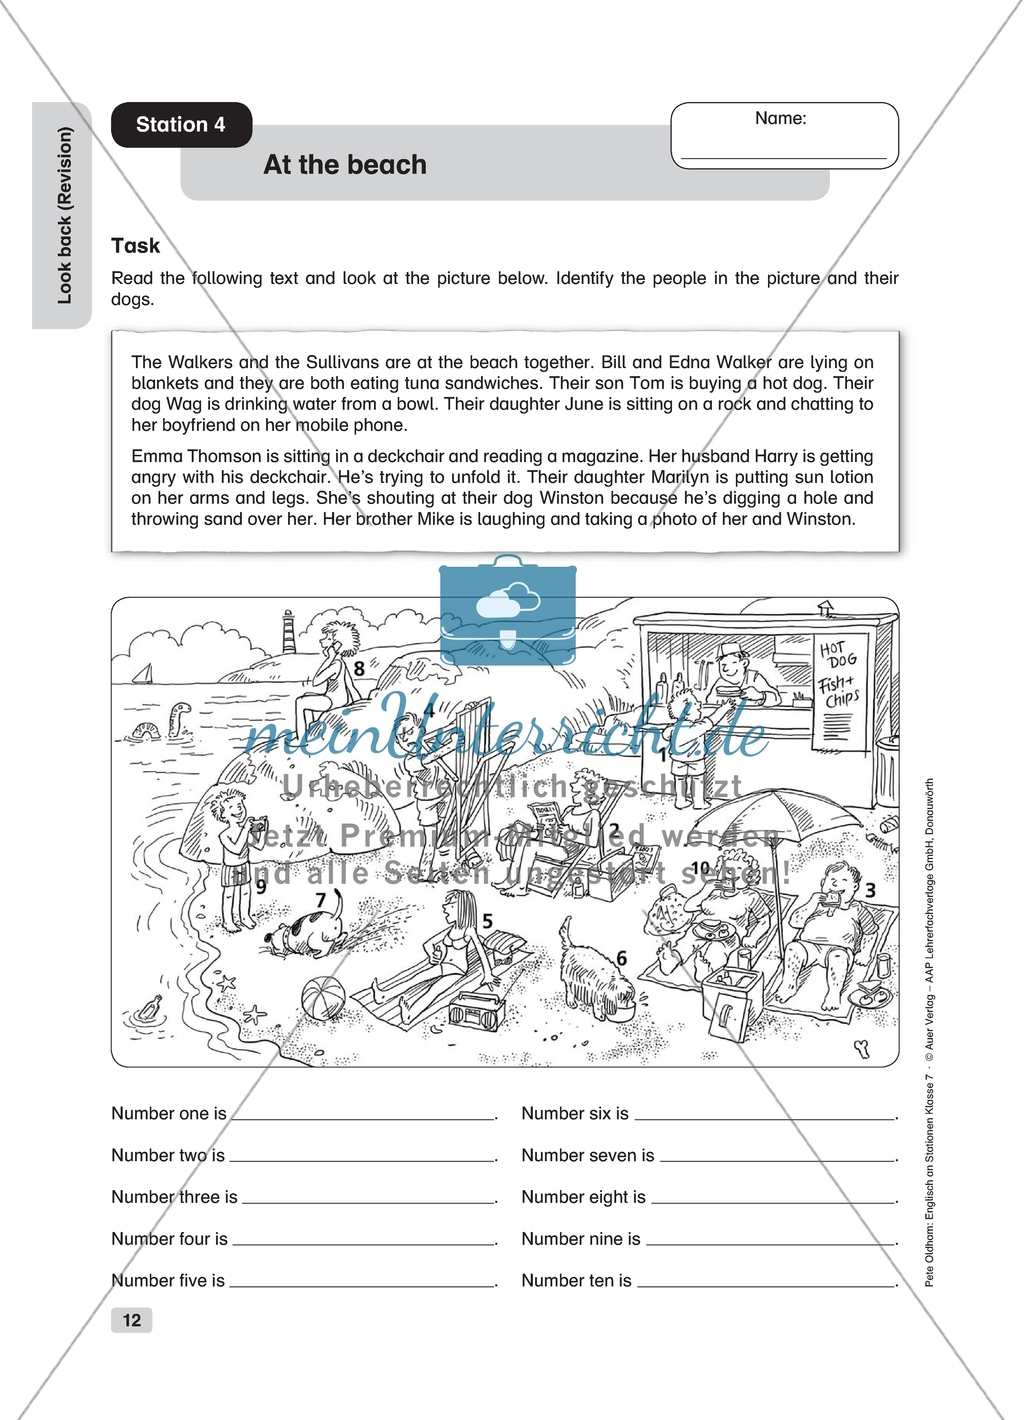 At The Beach Revision Worksheet And Solution